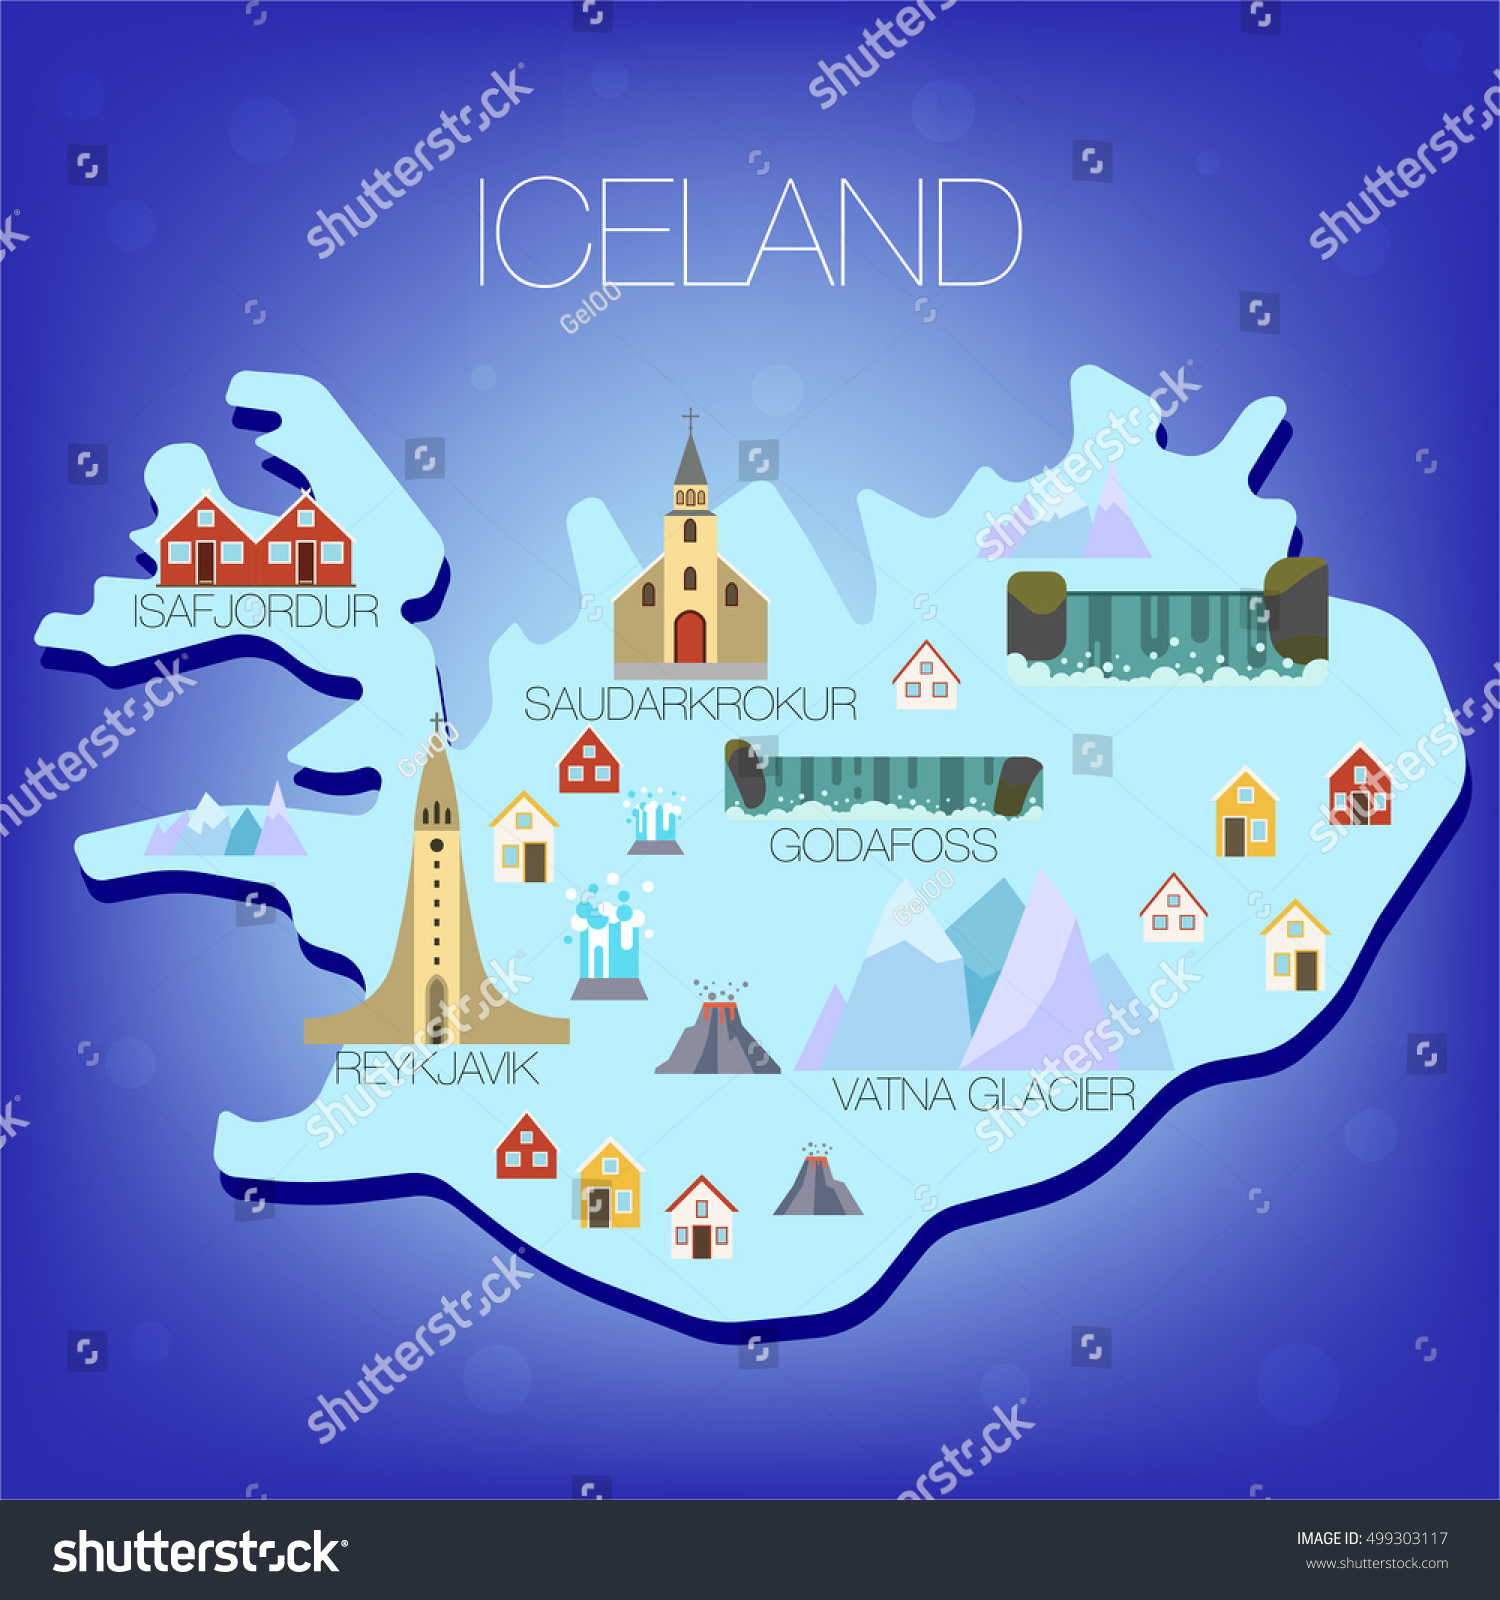 illustrated map of iceland trave attraction iceland tourist map attractionsmap of iceland. illustrated map iceland trave attraction iceland stock vector